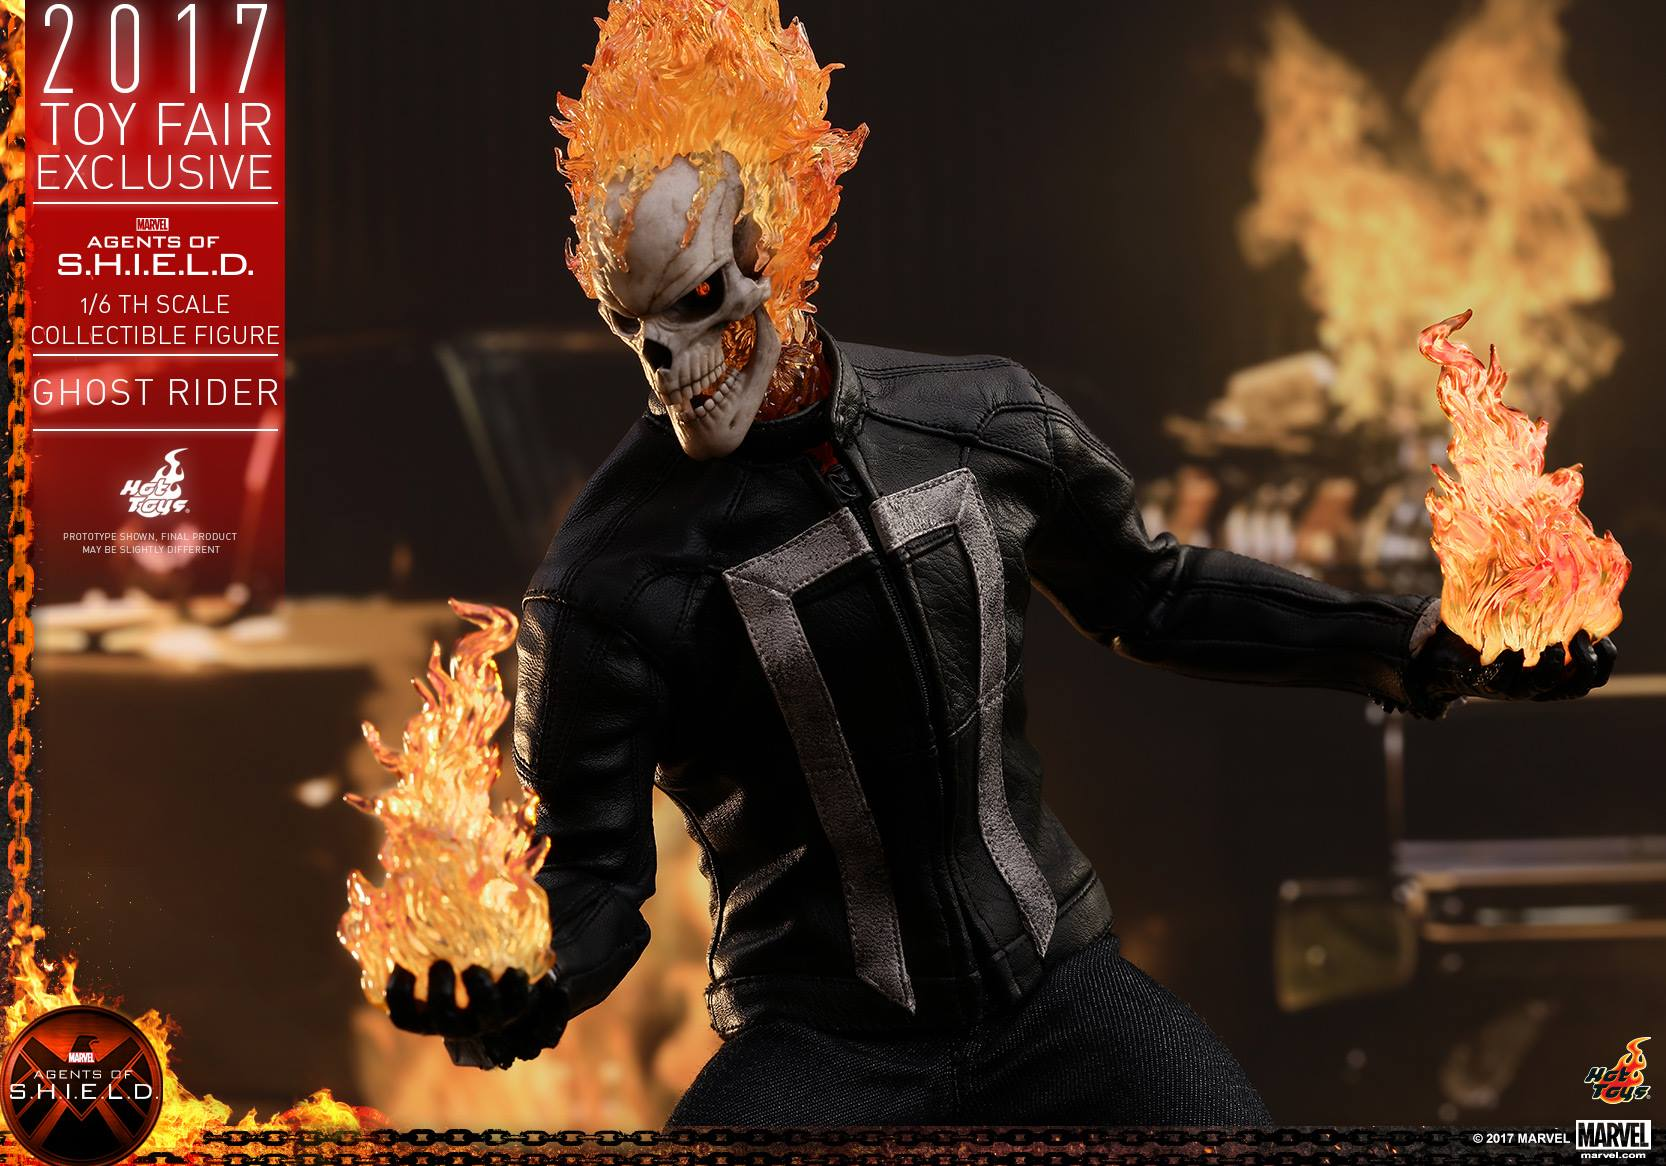 Hot Toys Agents Of S.H.I.E.L.D. Ghost Rider Sixth Scale Figure